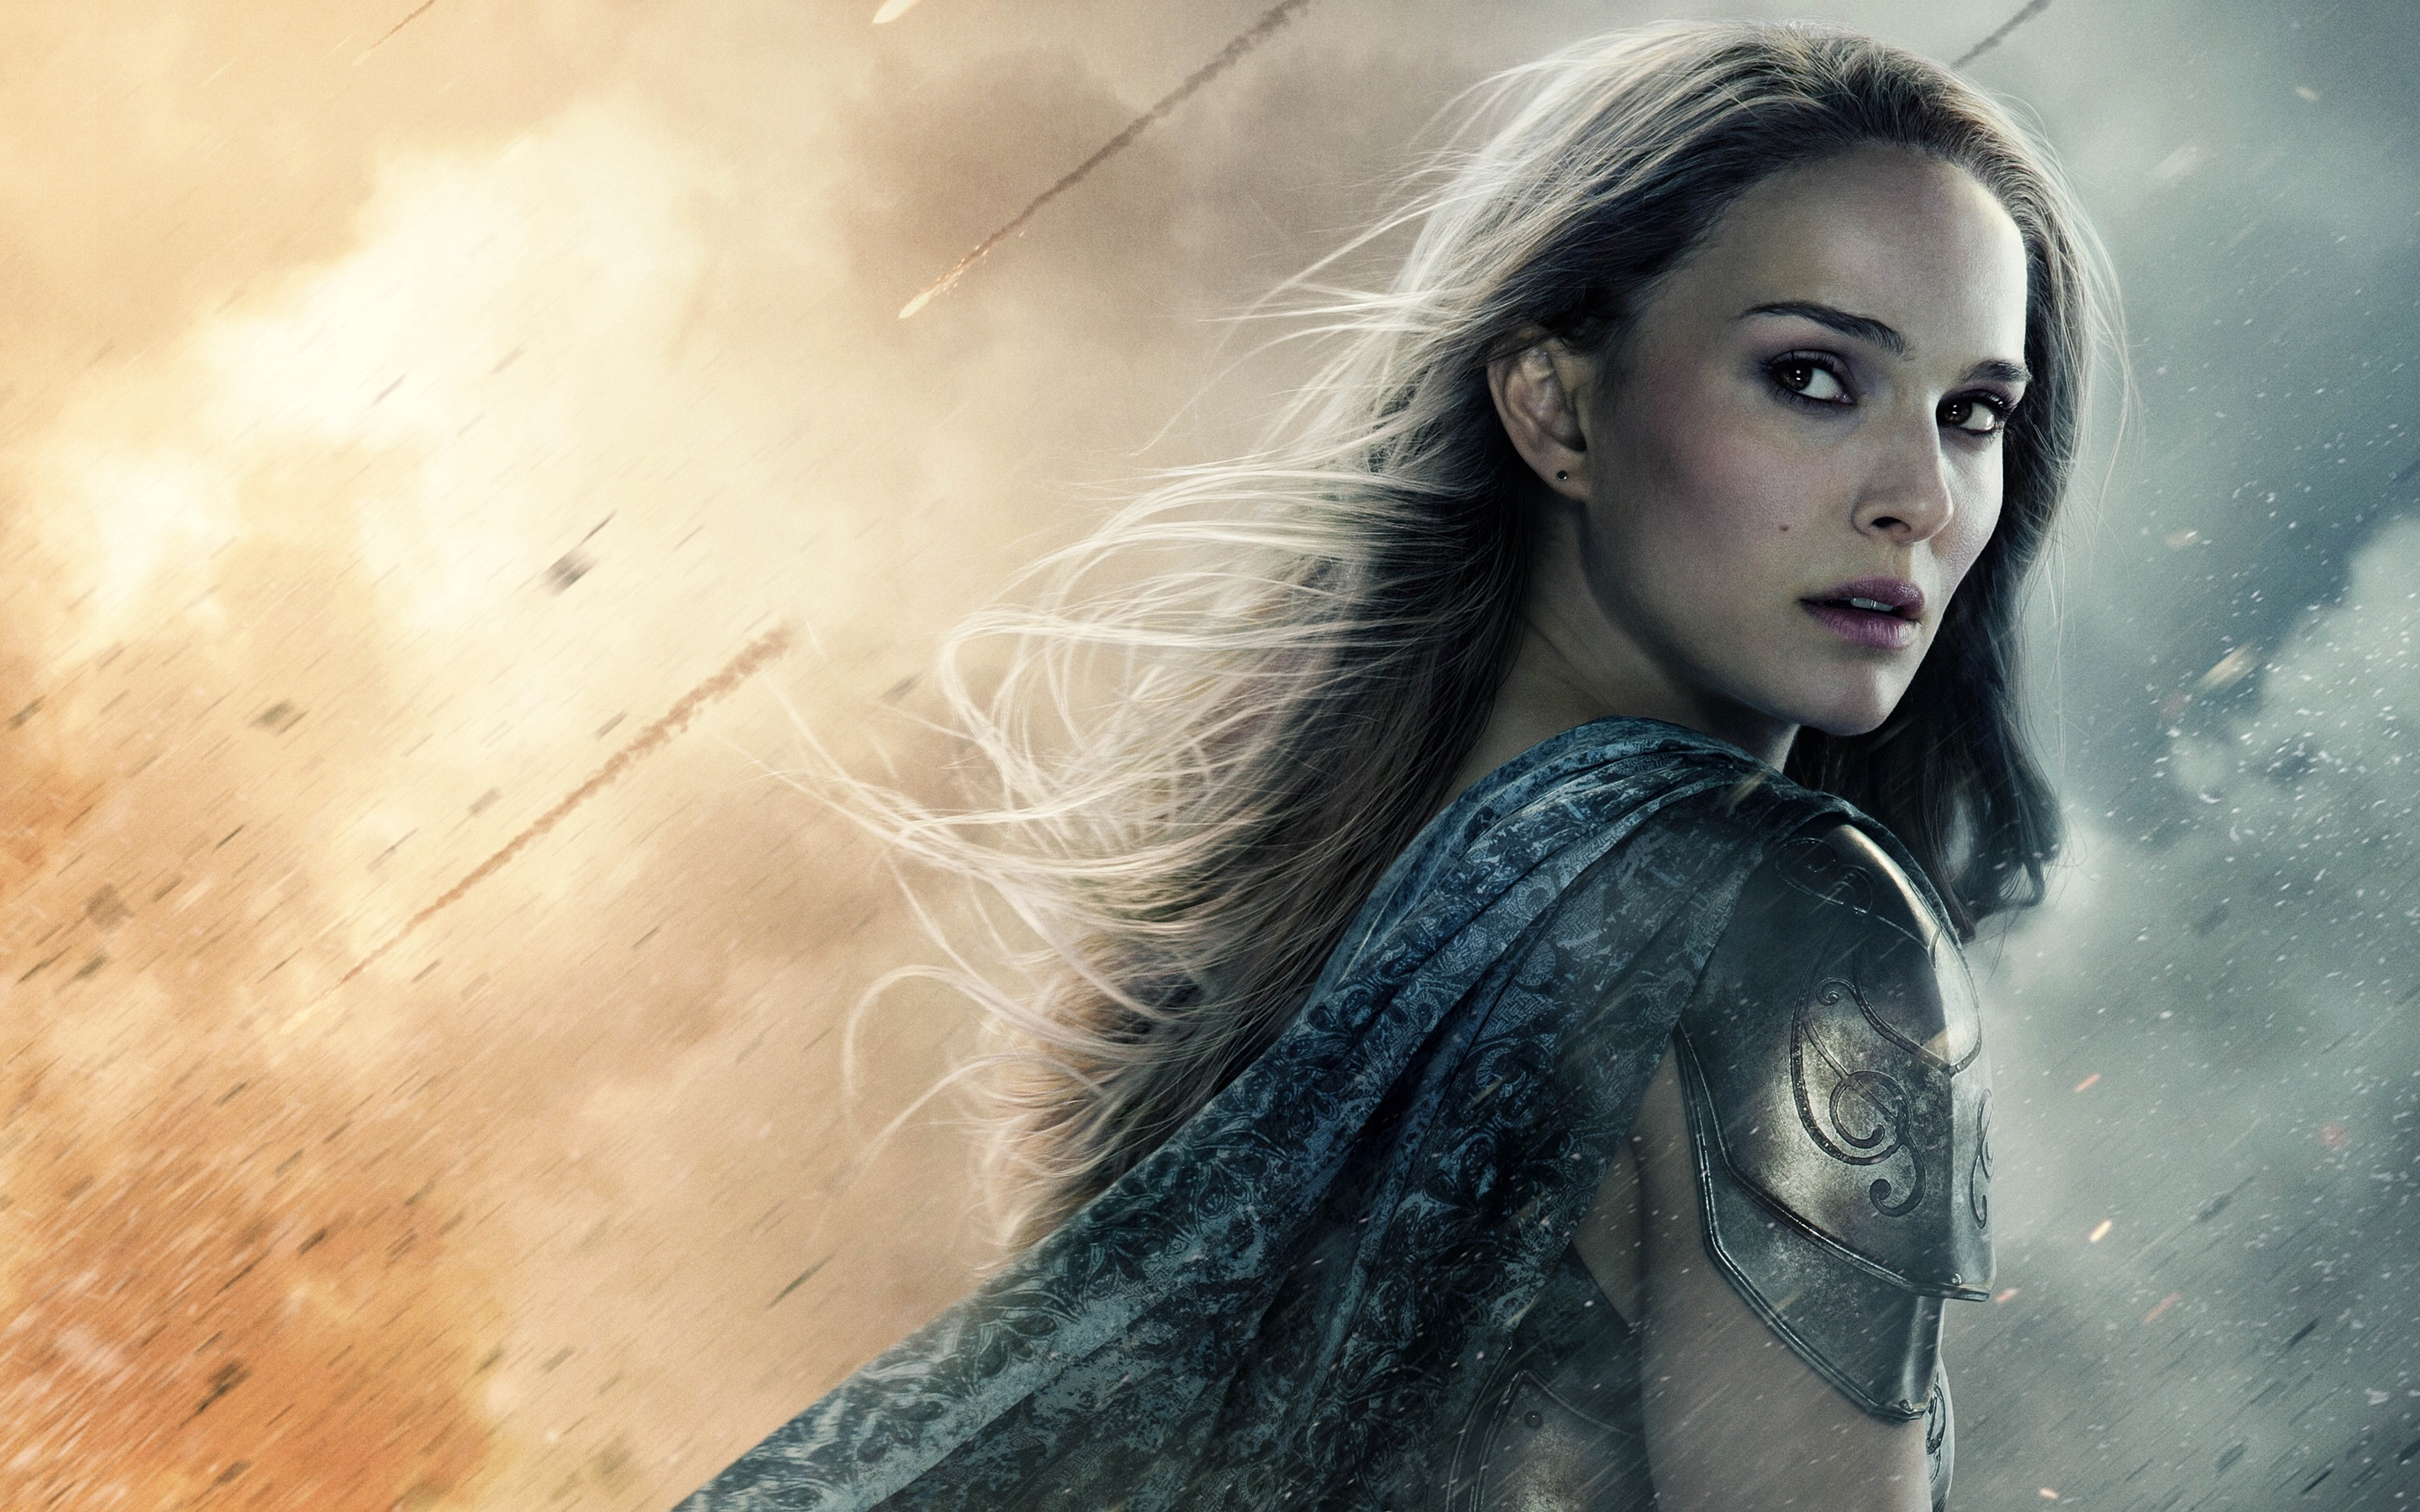 Natalie Portman Background (7 Wallpapers) - HD Wallpapers